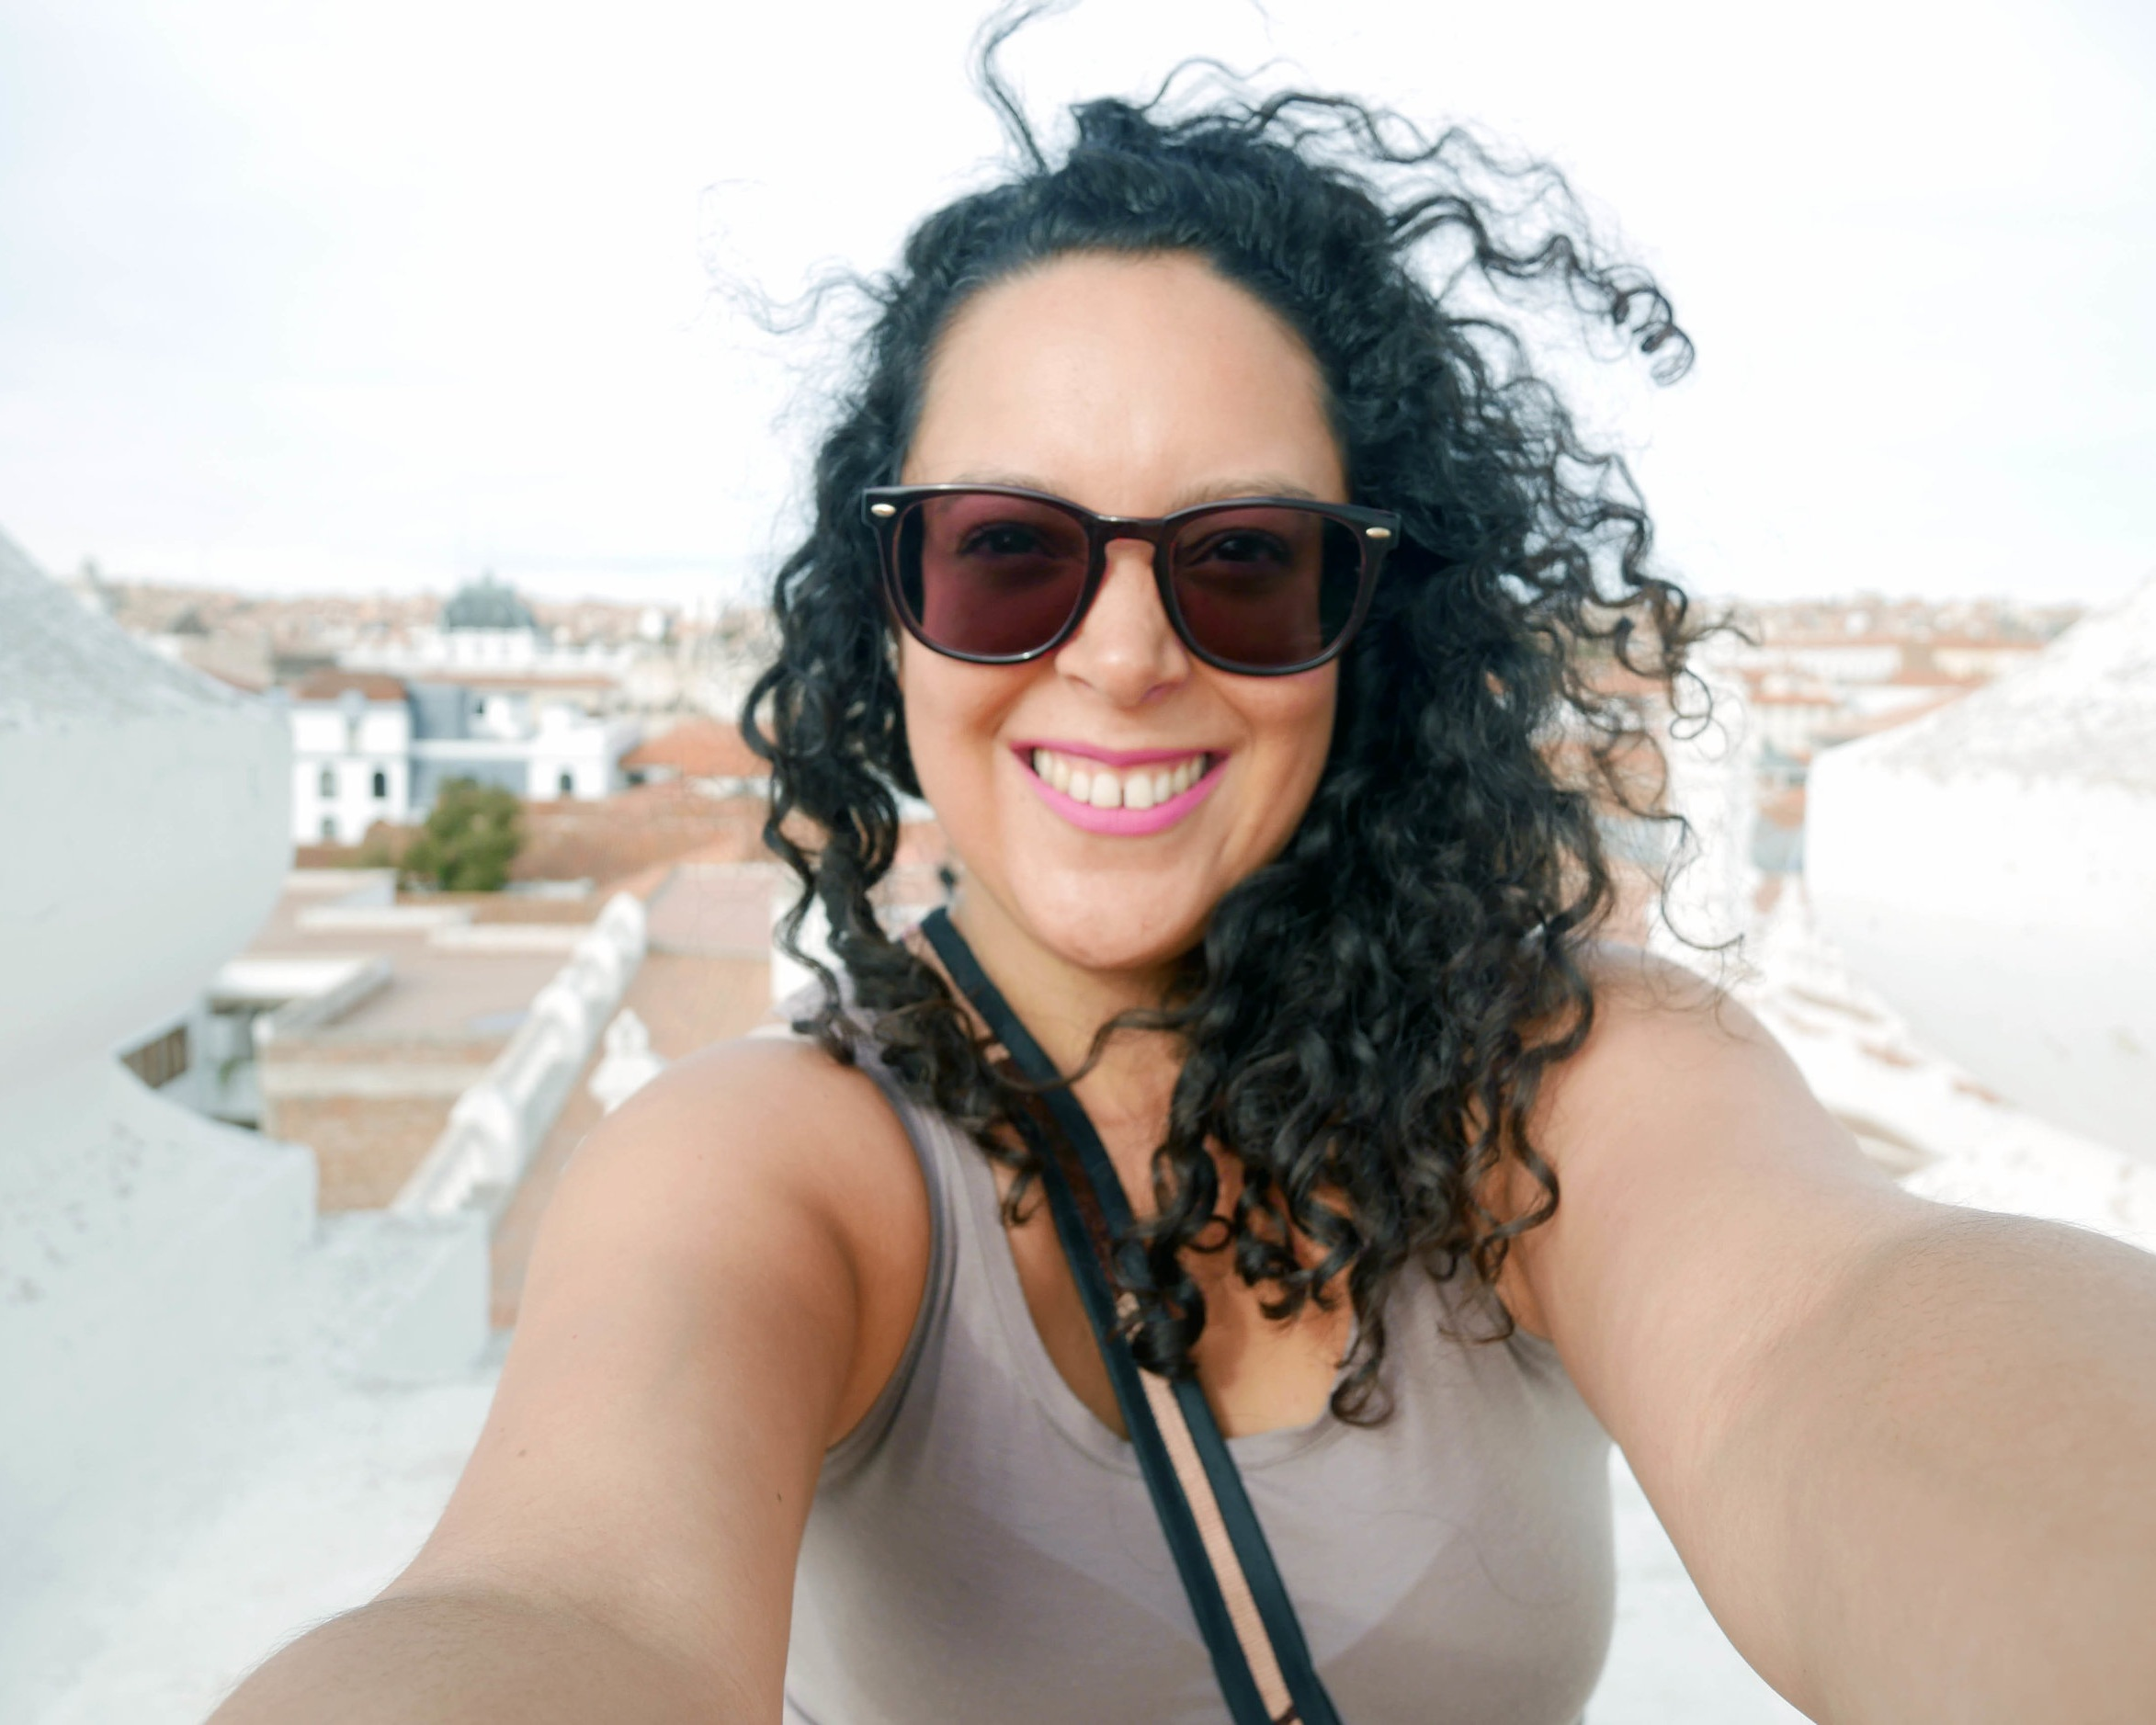 Travel, work, blogging and socialising. Can I do it all in 2019?